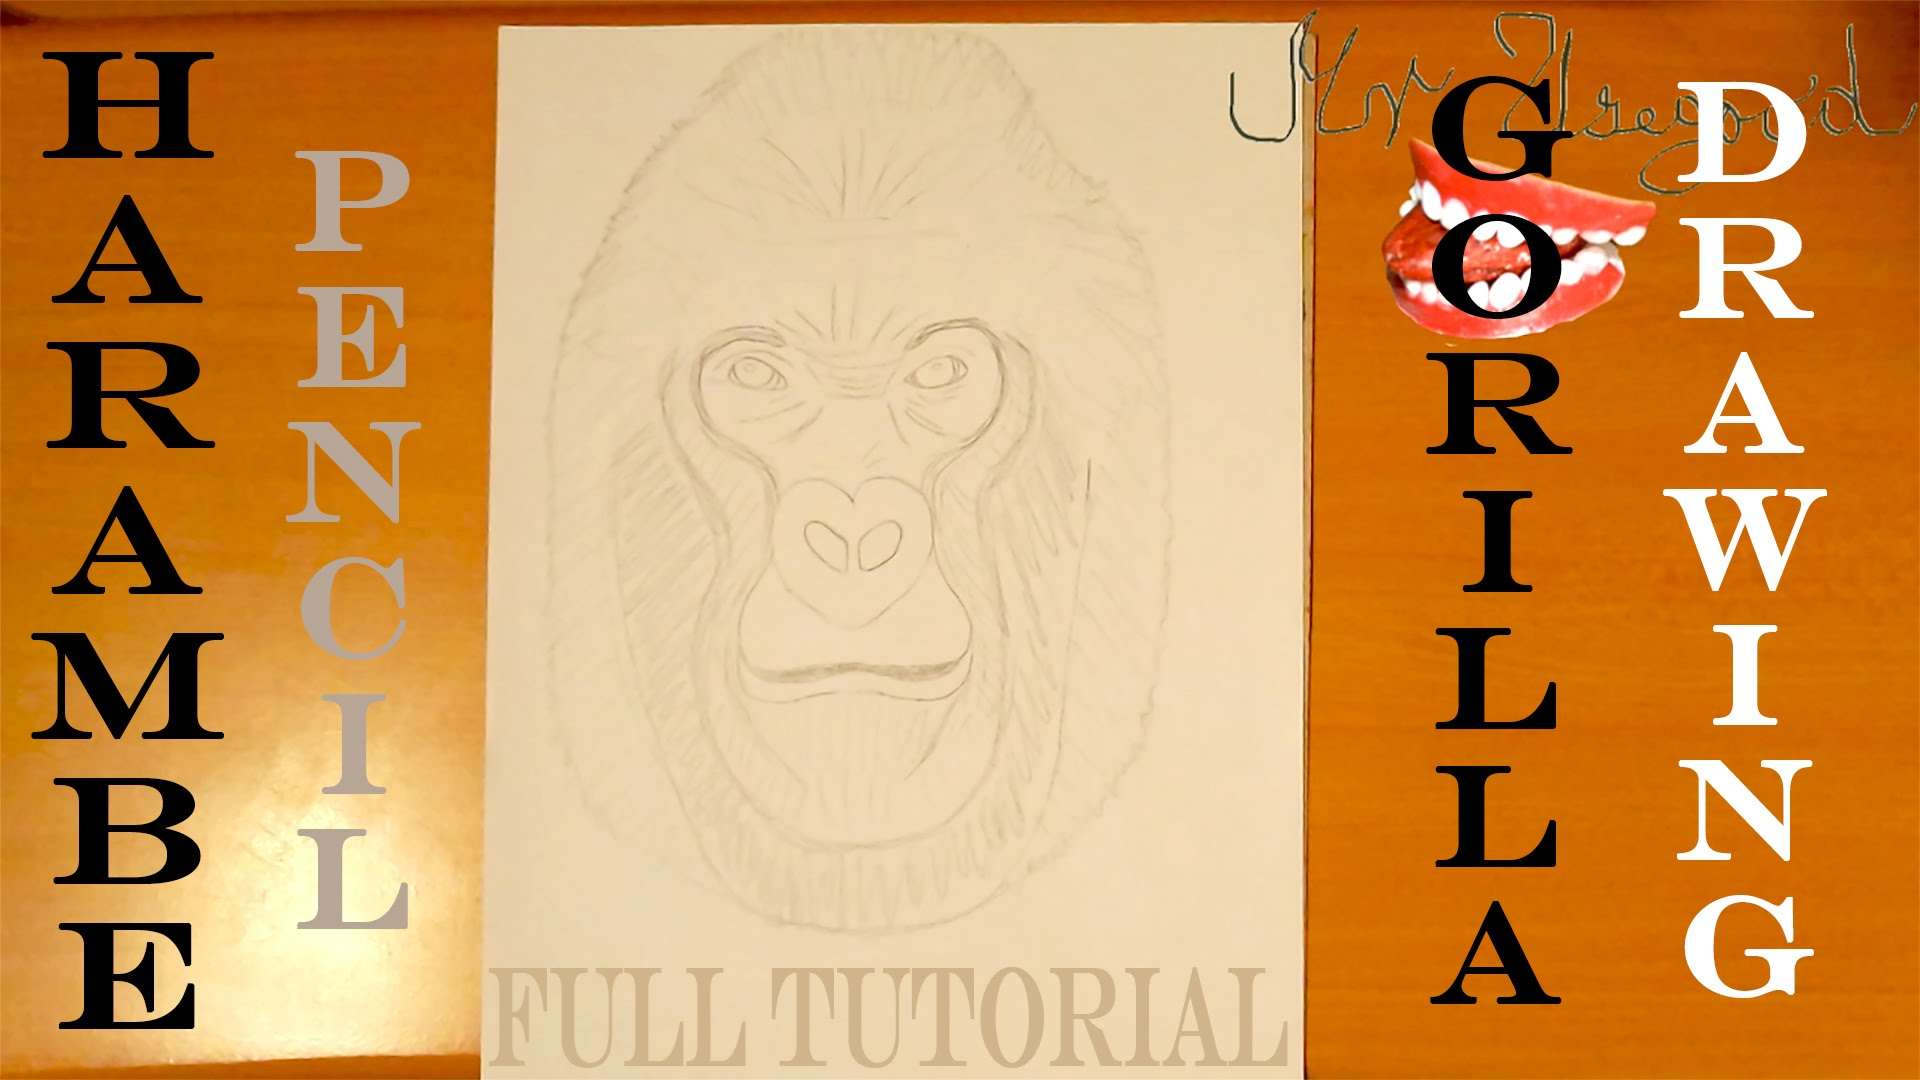 Drawn origami gorilla How How FULL for Easy